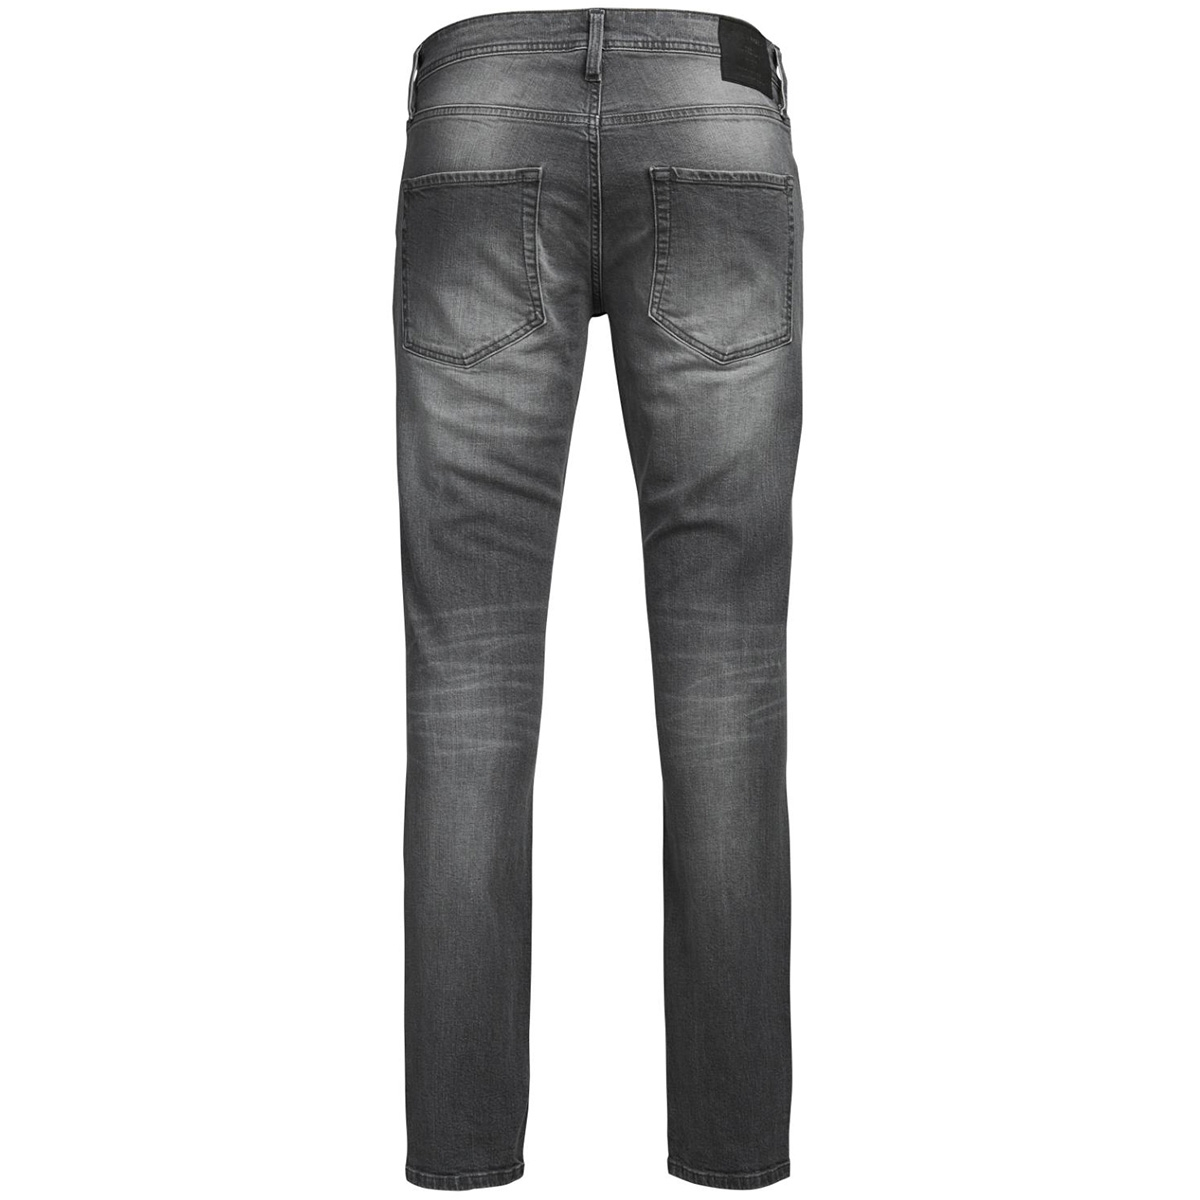 jjitim jjoriginal cr 010 12127461 jack & jones jeans grey denim